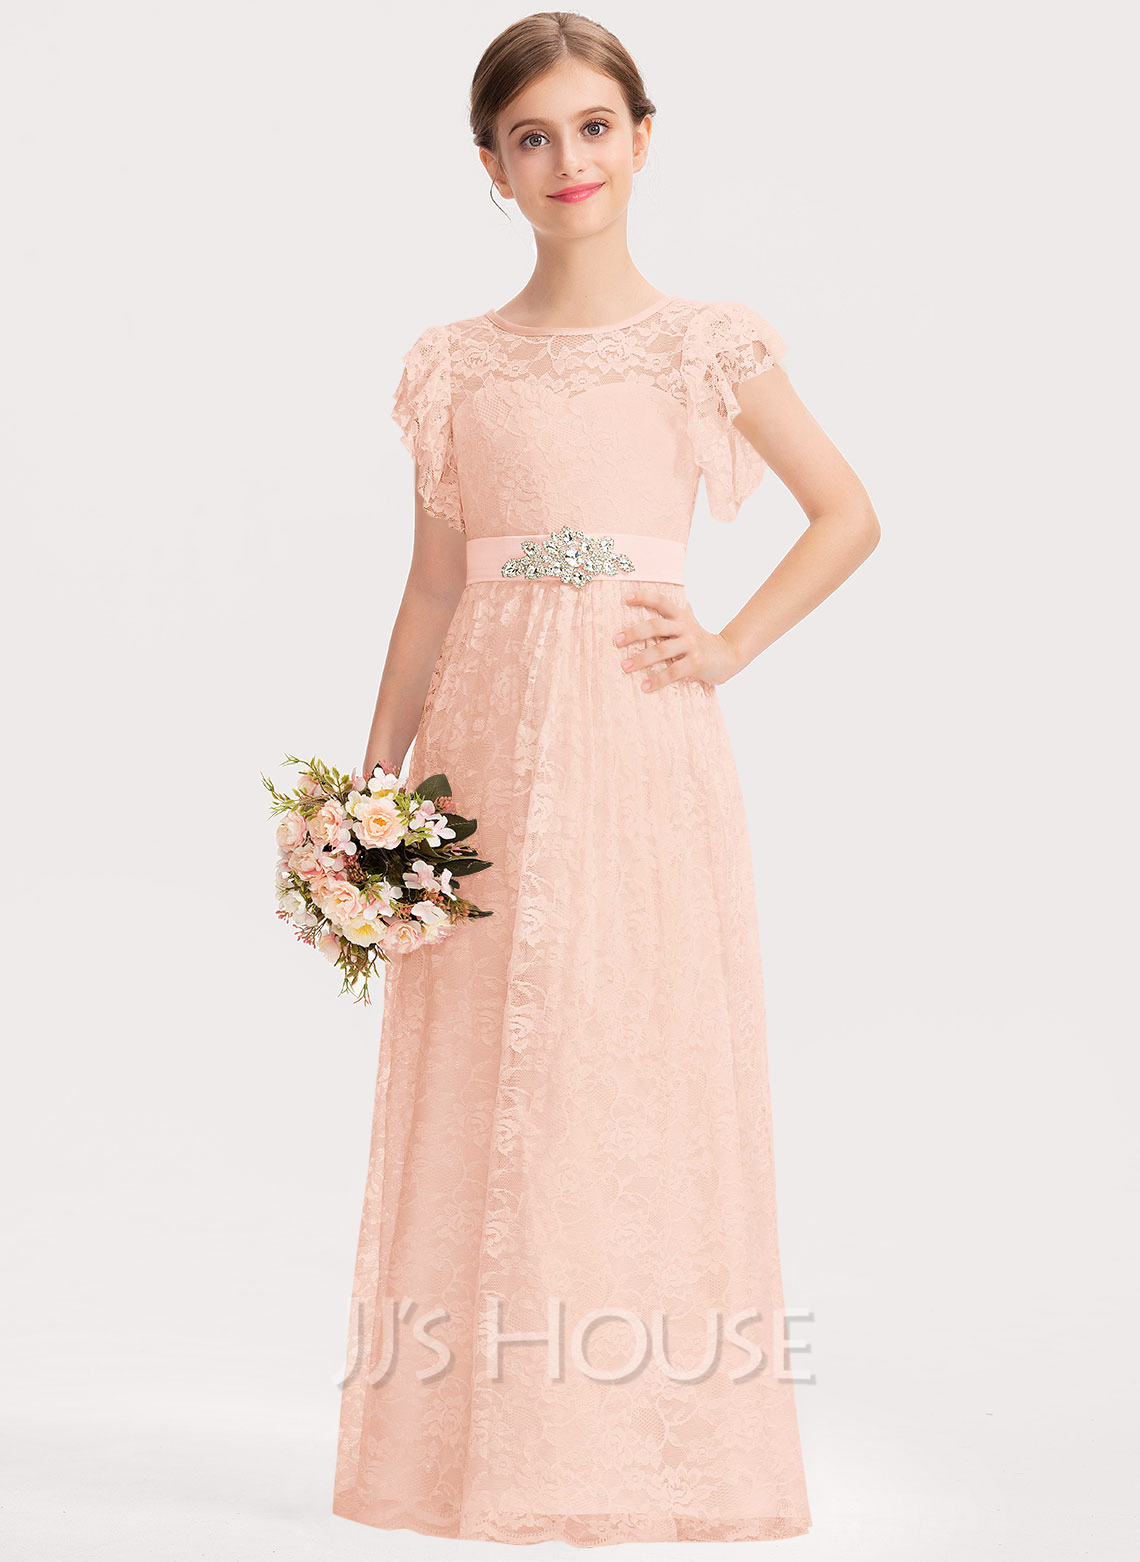 A-Line Scoop Neck Floor-Length Lace Junior Bridesmaid Dress With Beading Bow(s) Cascading Ruffles